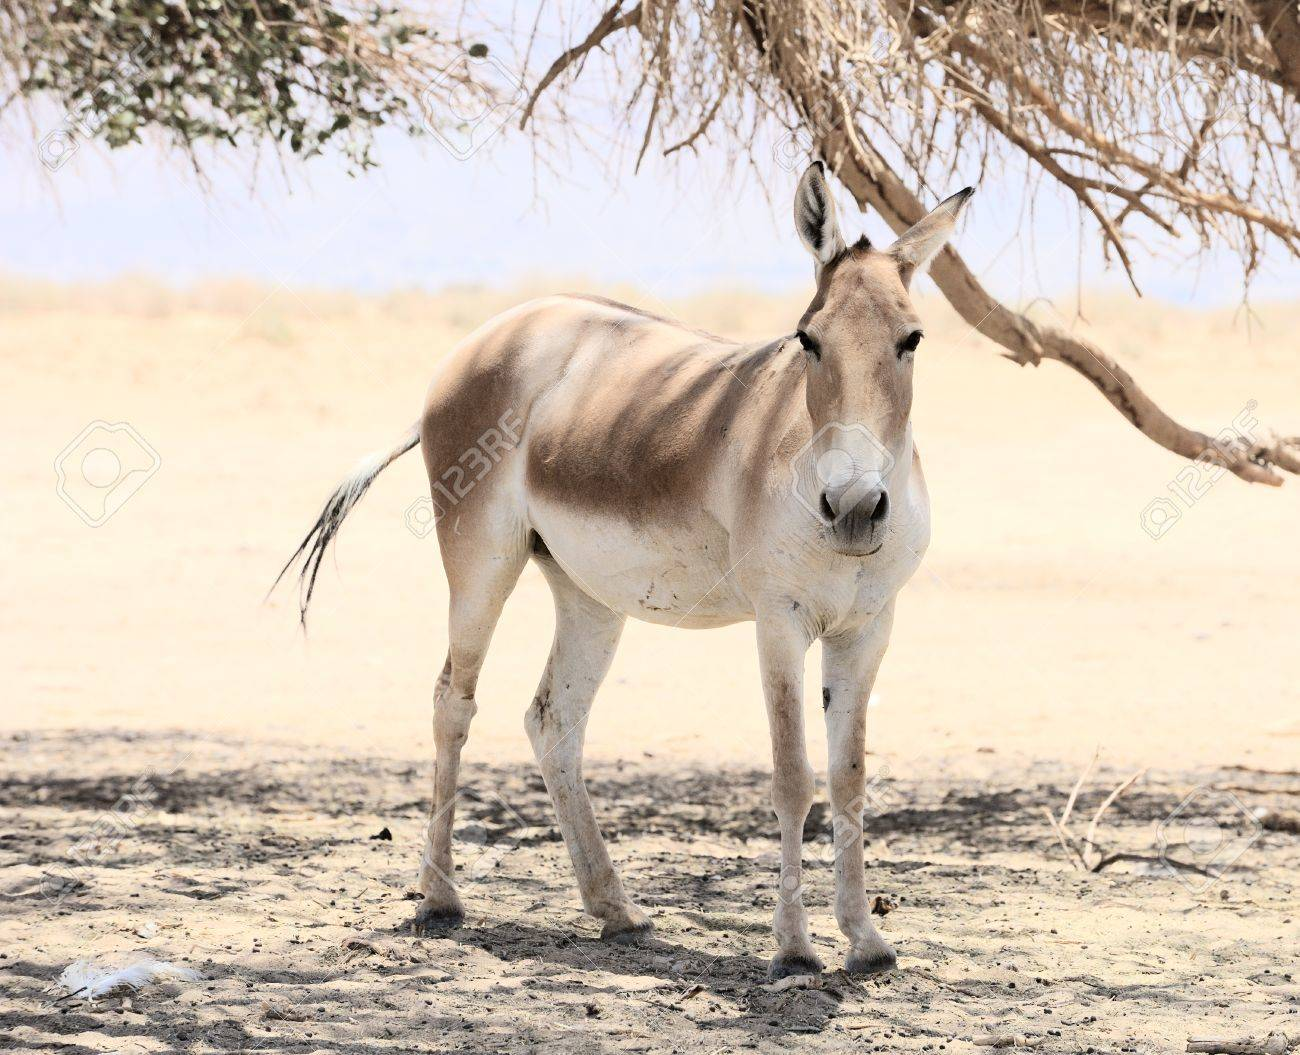 https://previews.123rf.com/images/vblinov/vblinov1109/vblinov110900037/10618009-Onager-in-the-reserve-Hai-Bar-Yotvata-in-southern-Israel--Stock-Photo.jpg